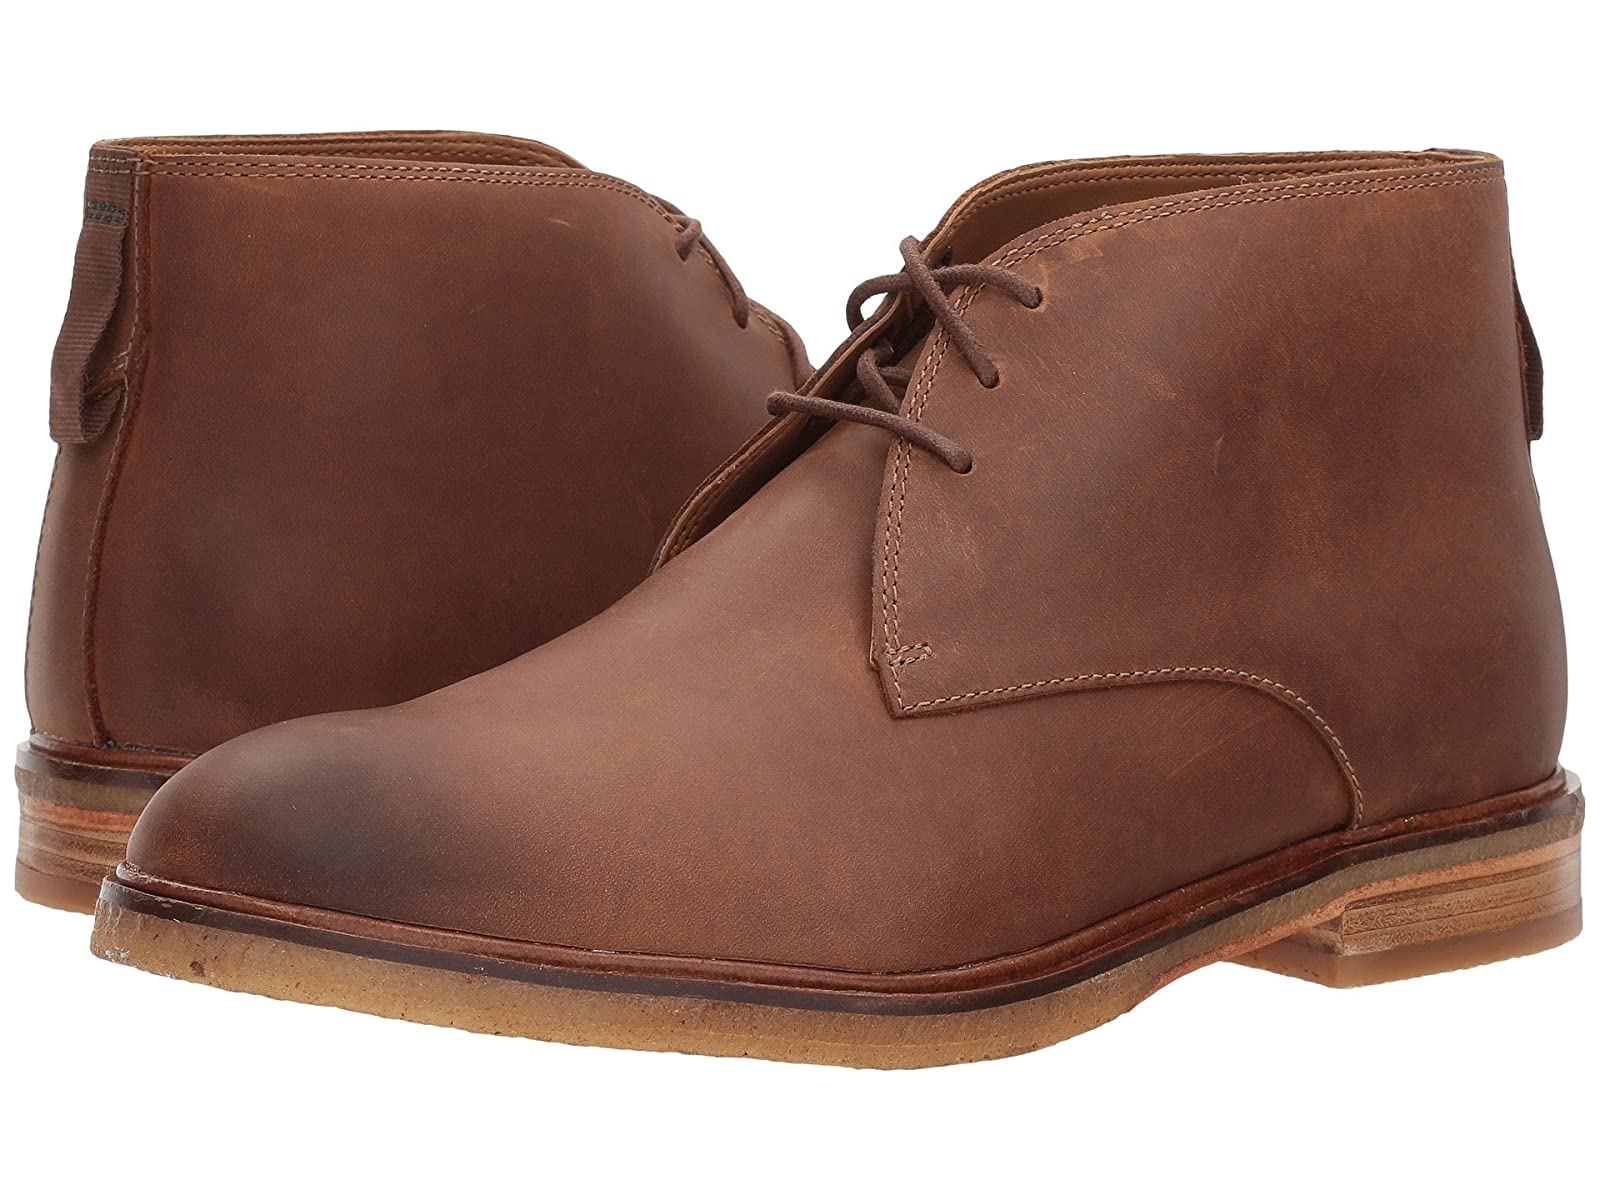 Clarks Clarkdale BaraCheap and distinctive eye-catching shoes